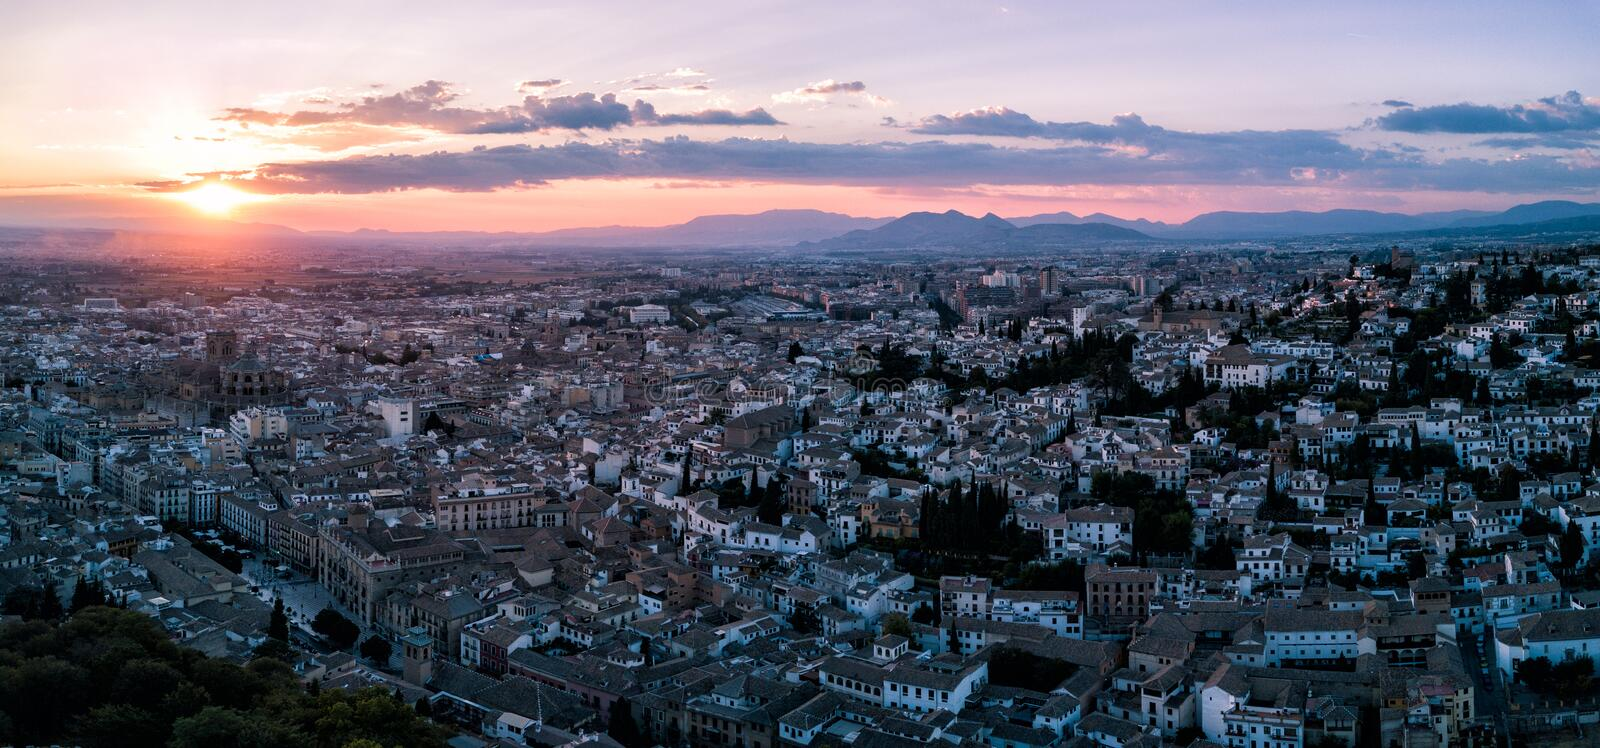 Aerial drone photograph of the city of Granada Spain at sunset royalty free stock photos